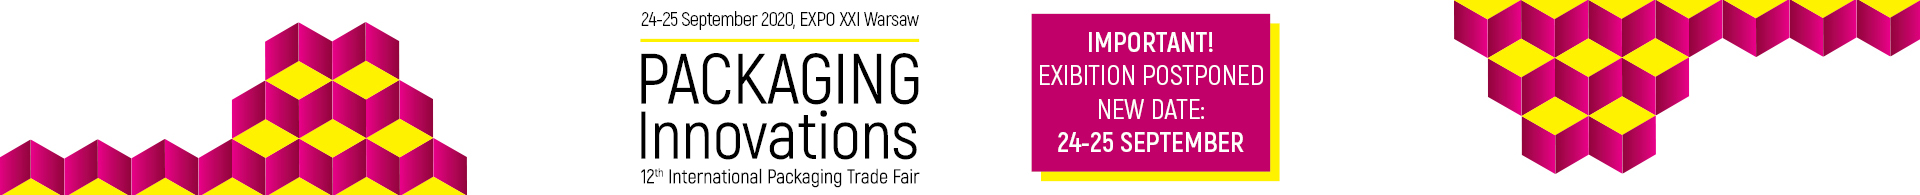 12th Packaging Trade Fair, Warsaw